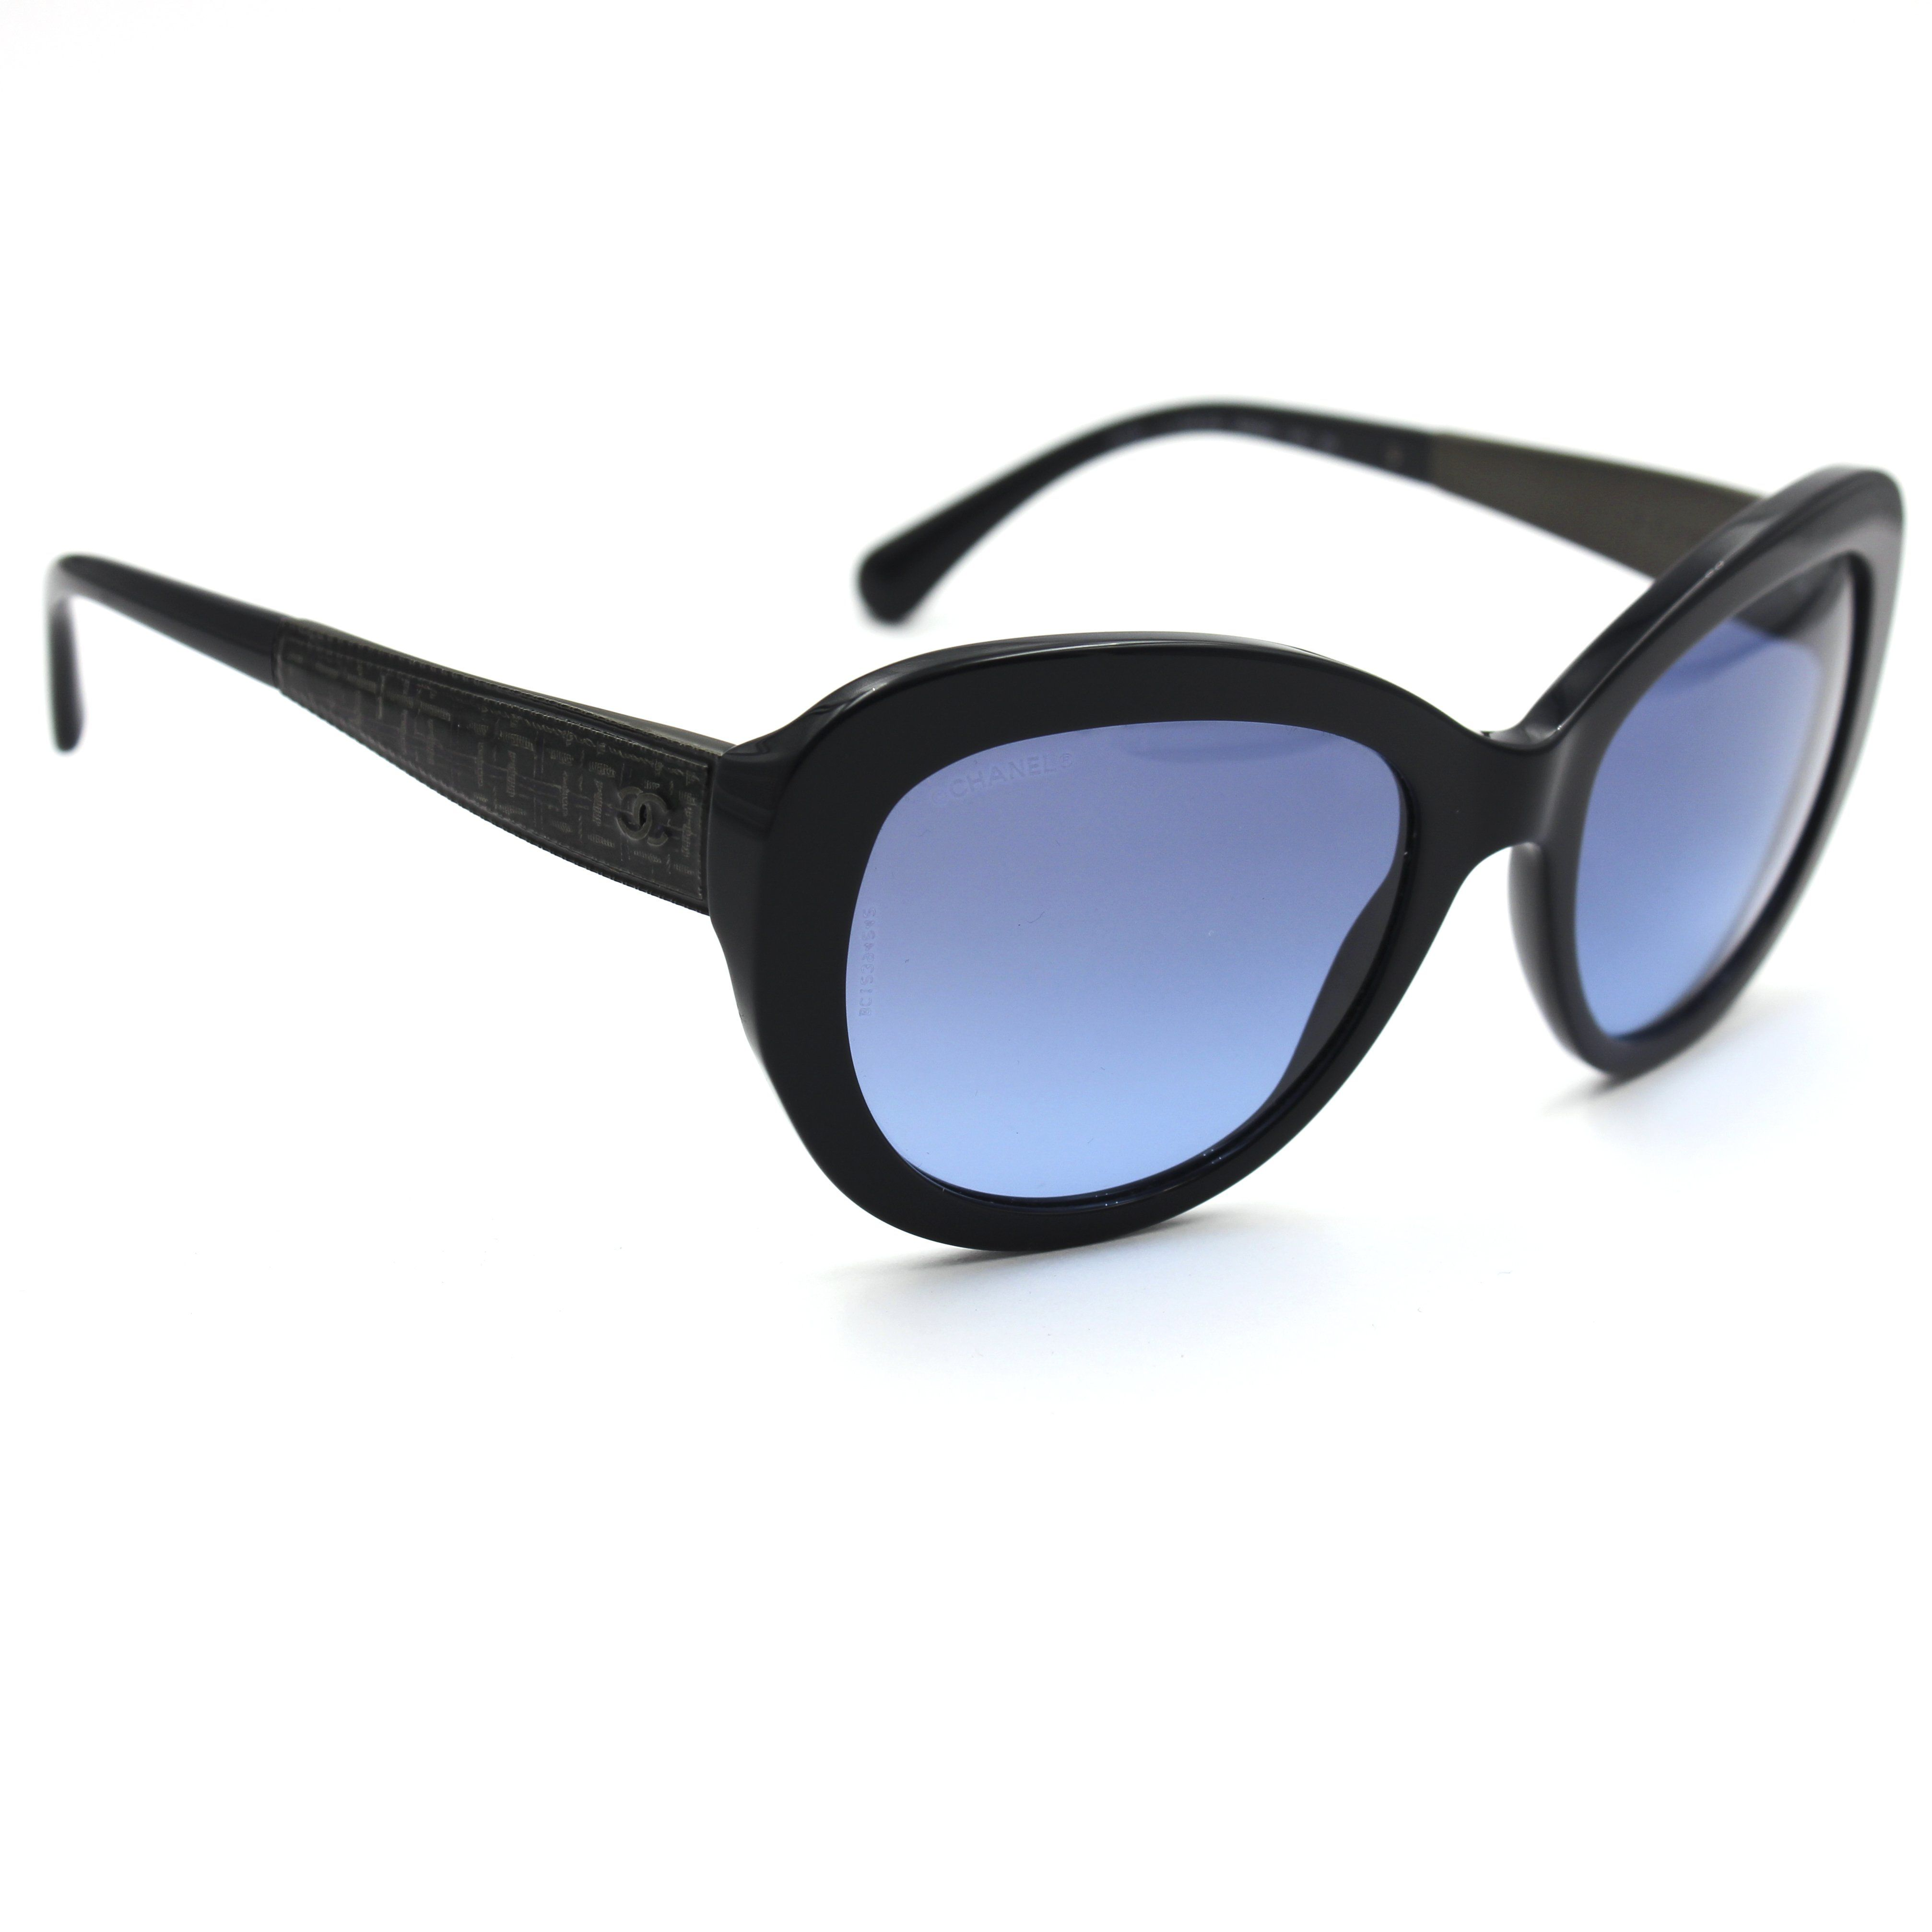 Chanel 5346 Butterfly Sunglasses Dark Blue Frame with Blue Gradient ...